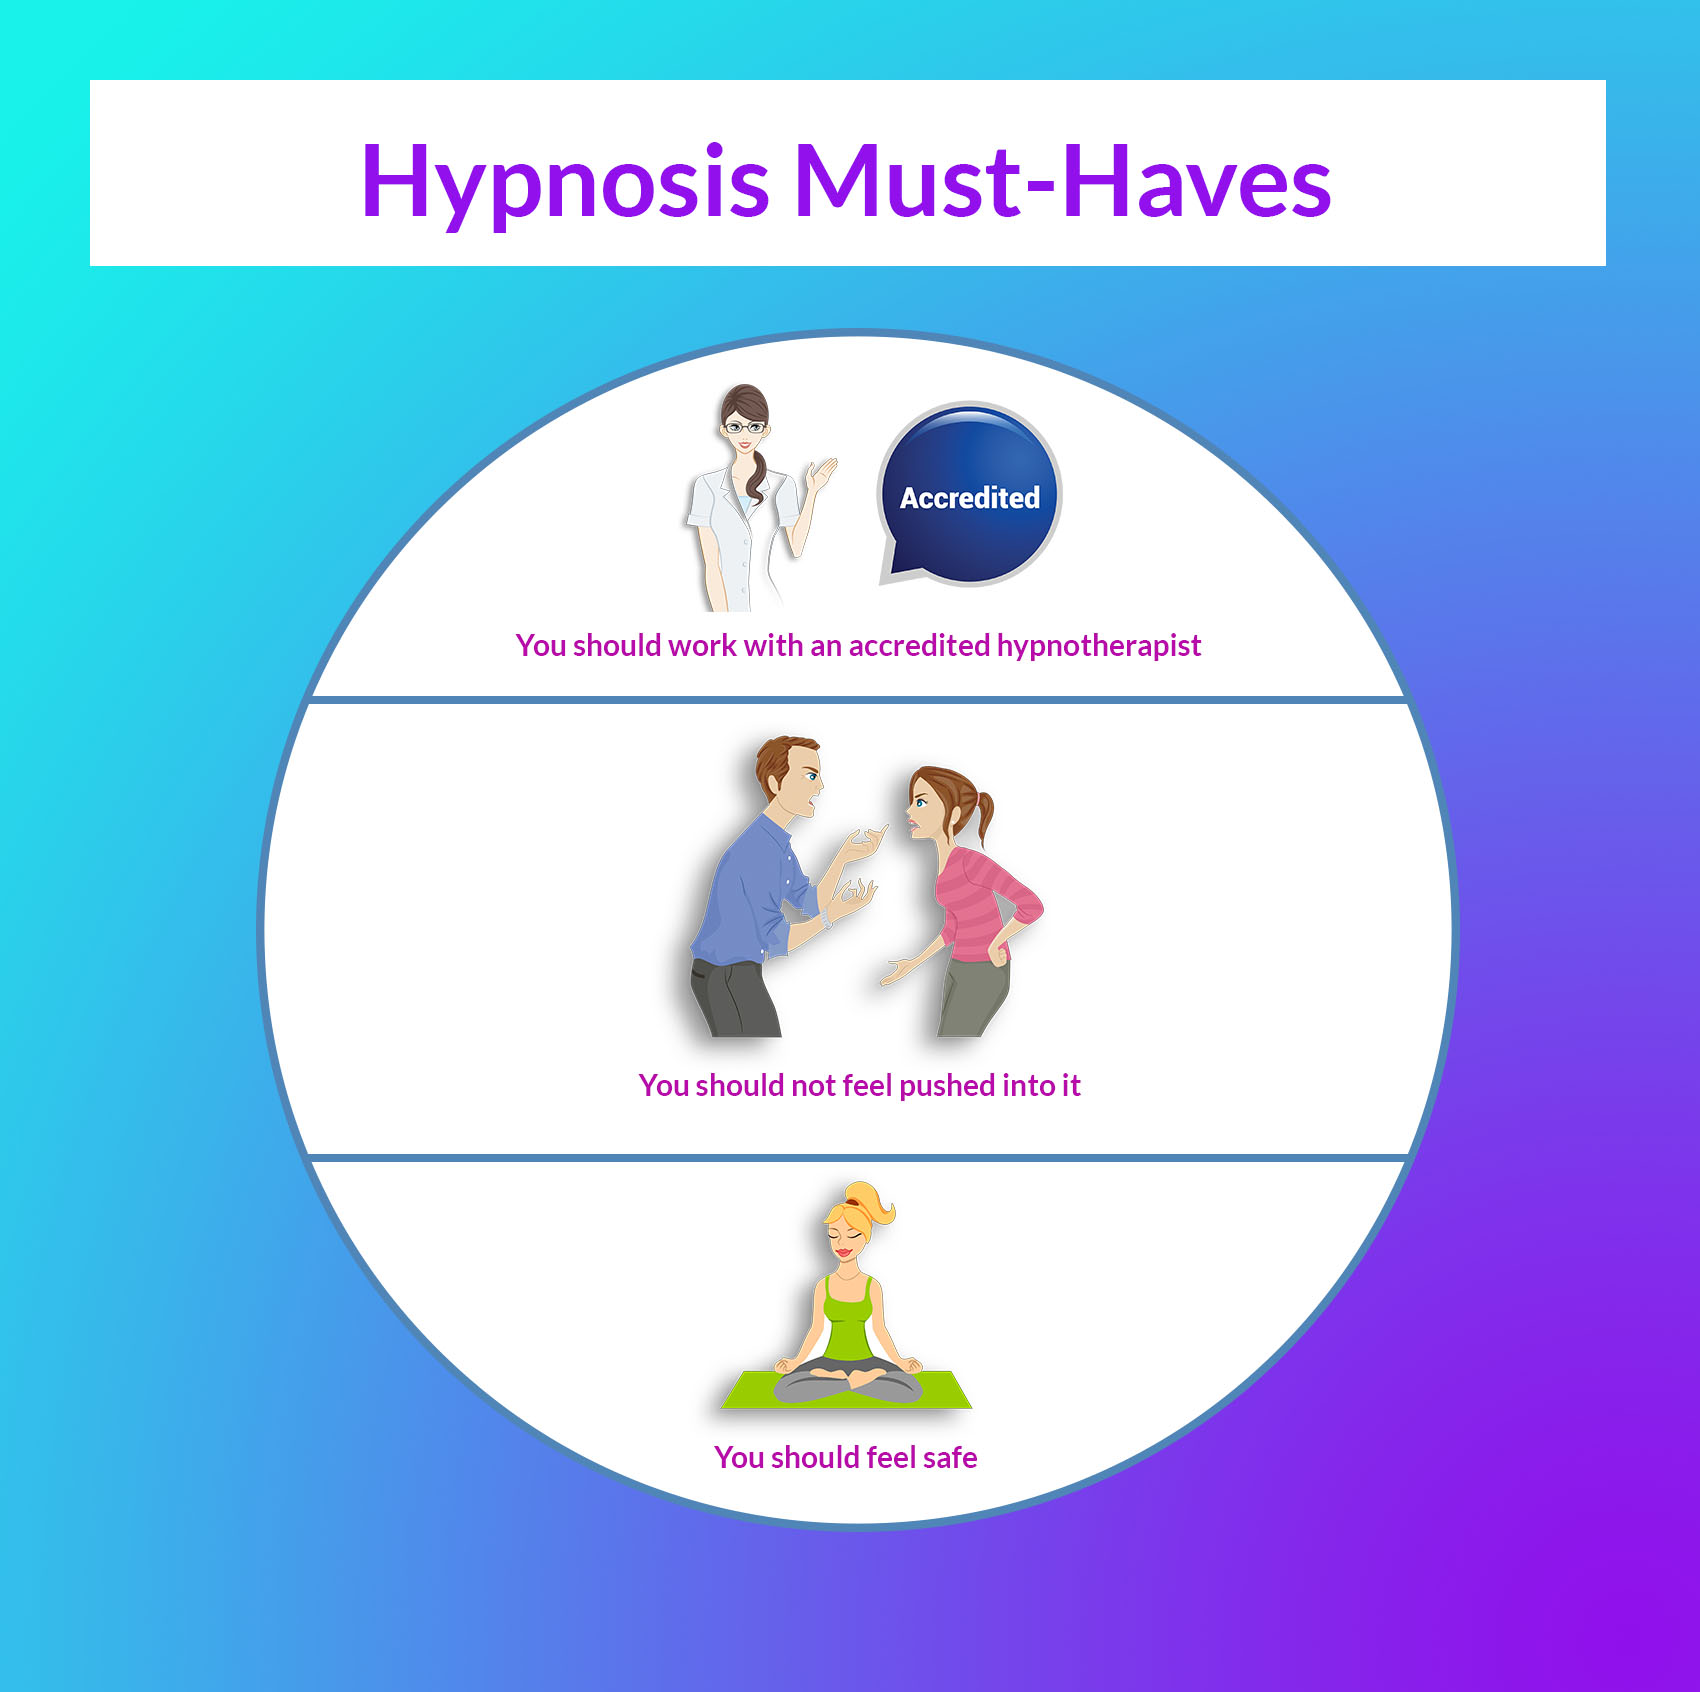 Things you must have for a successful hypnosis session